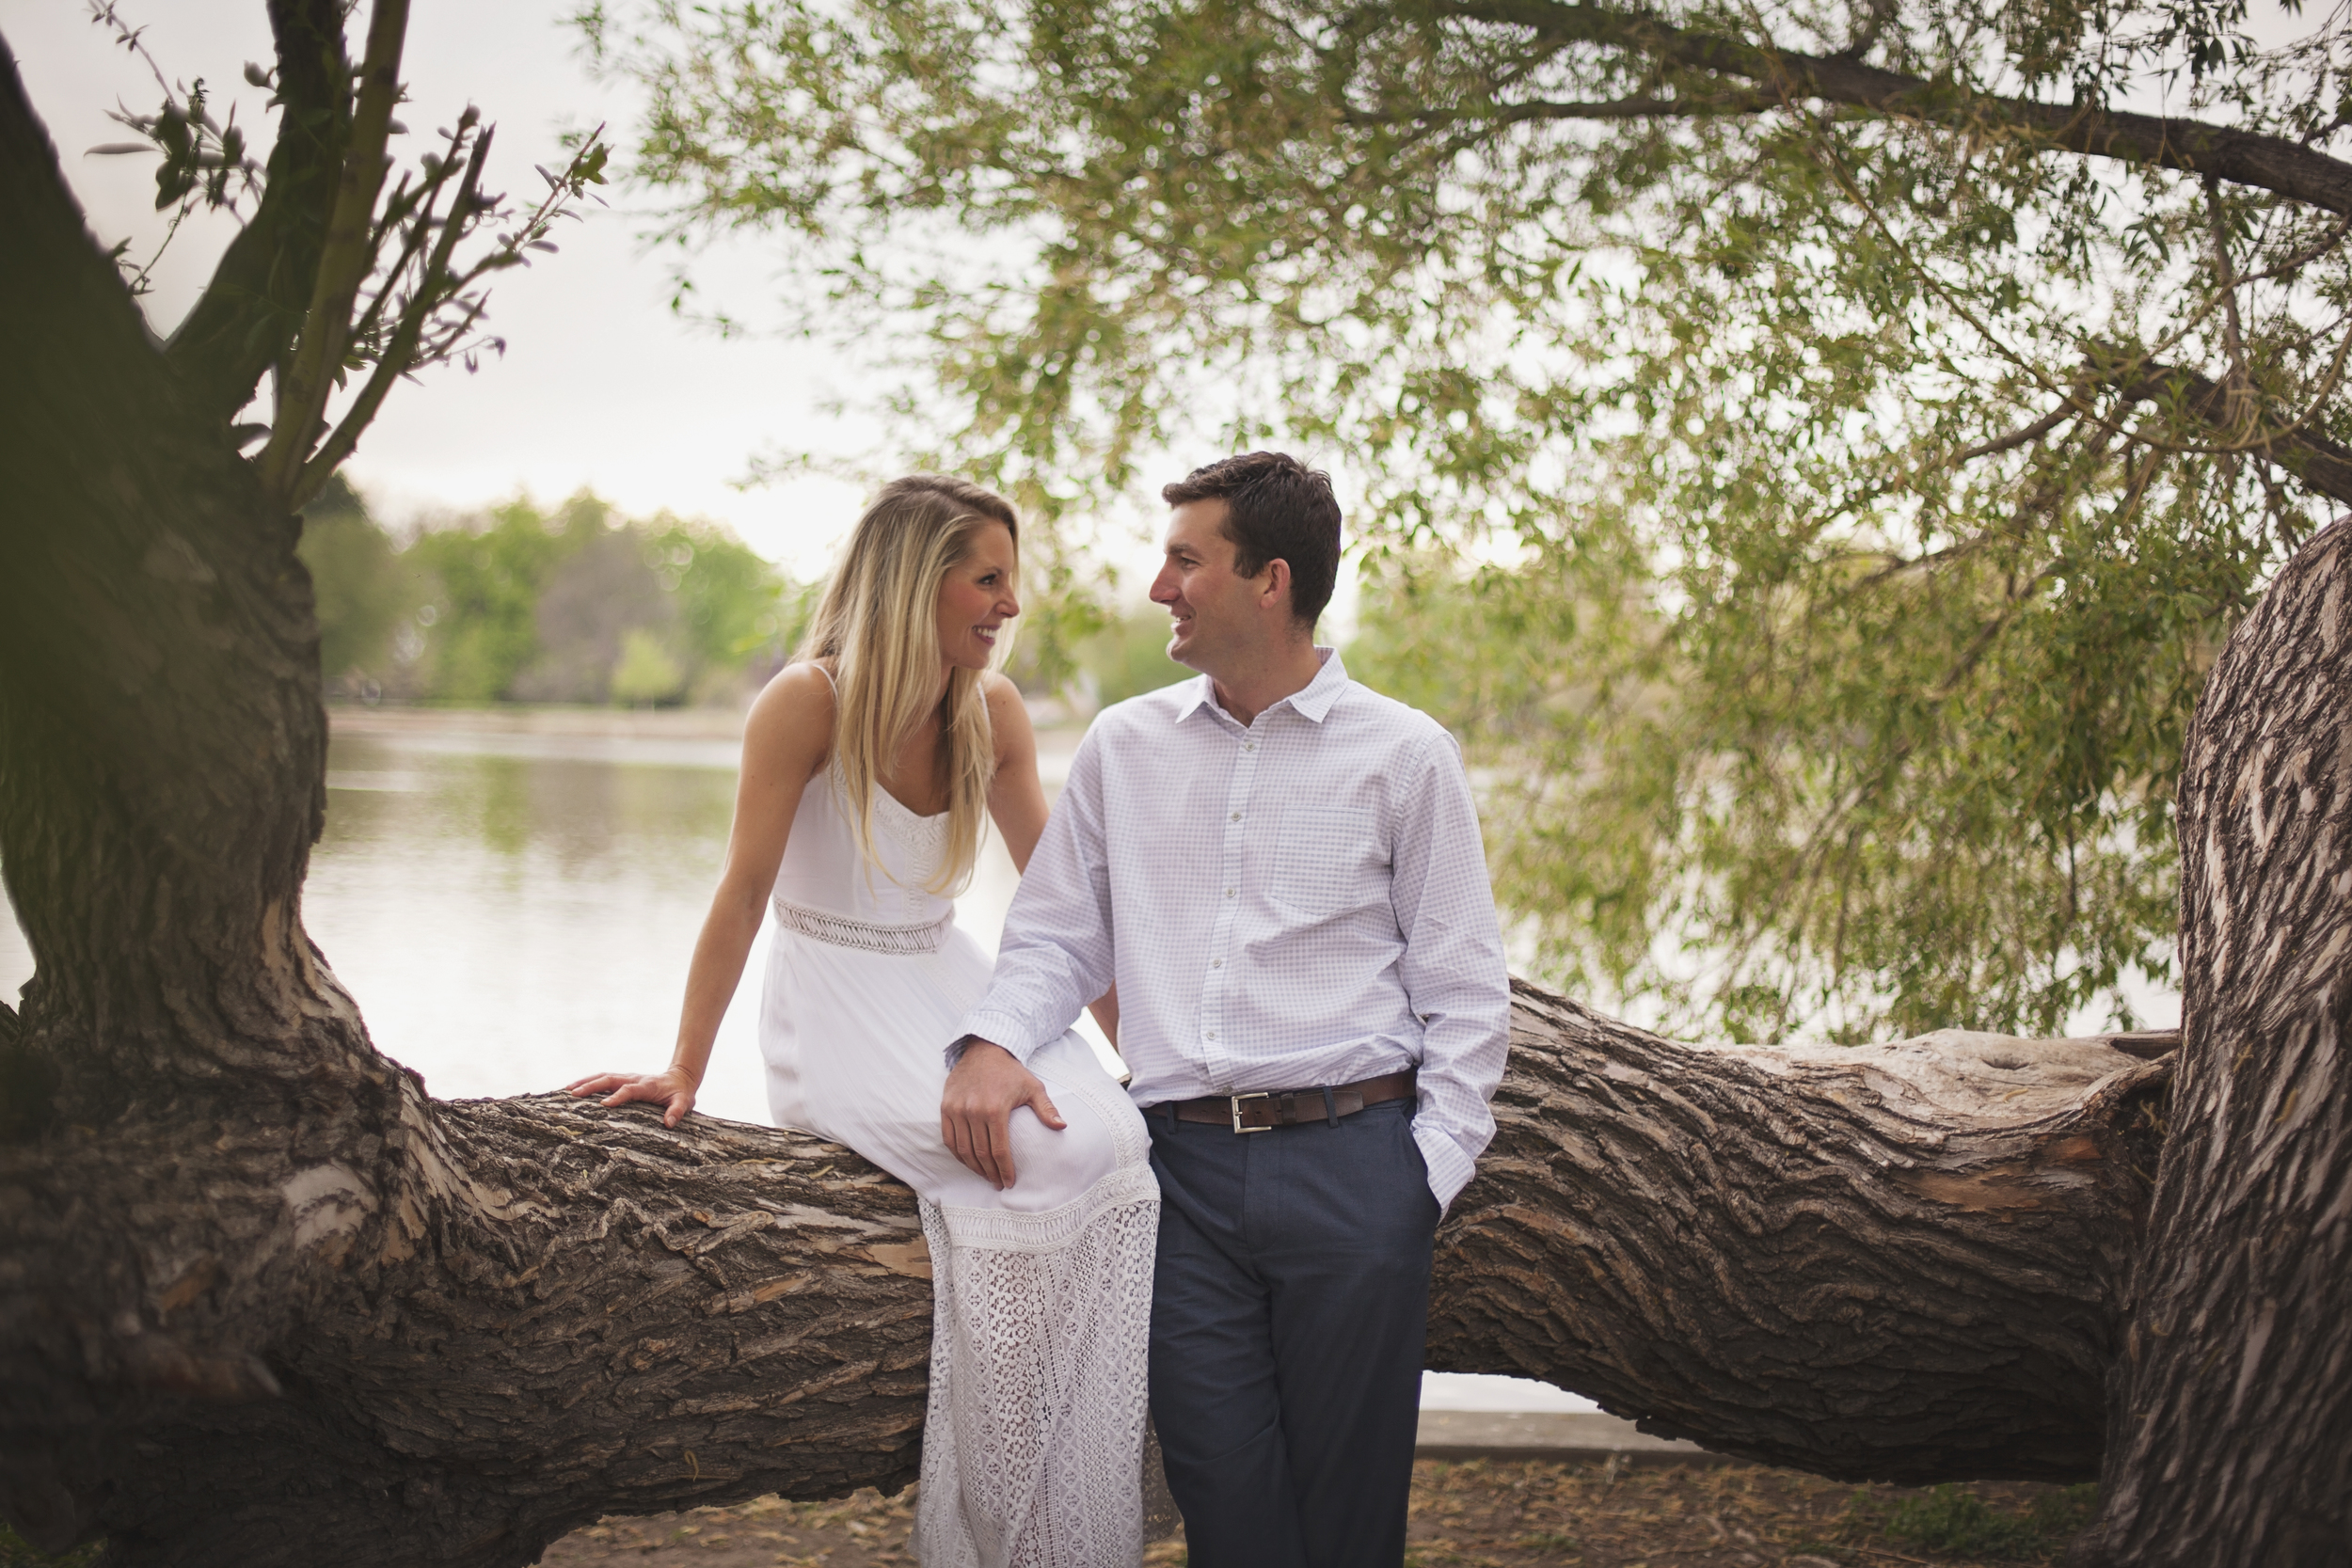 City Park engagement photography of engaged couple sitting on tree limb in front of lake